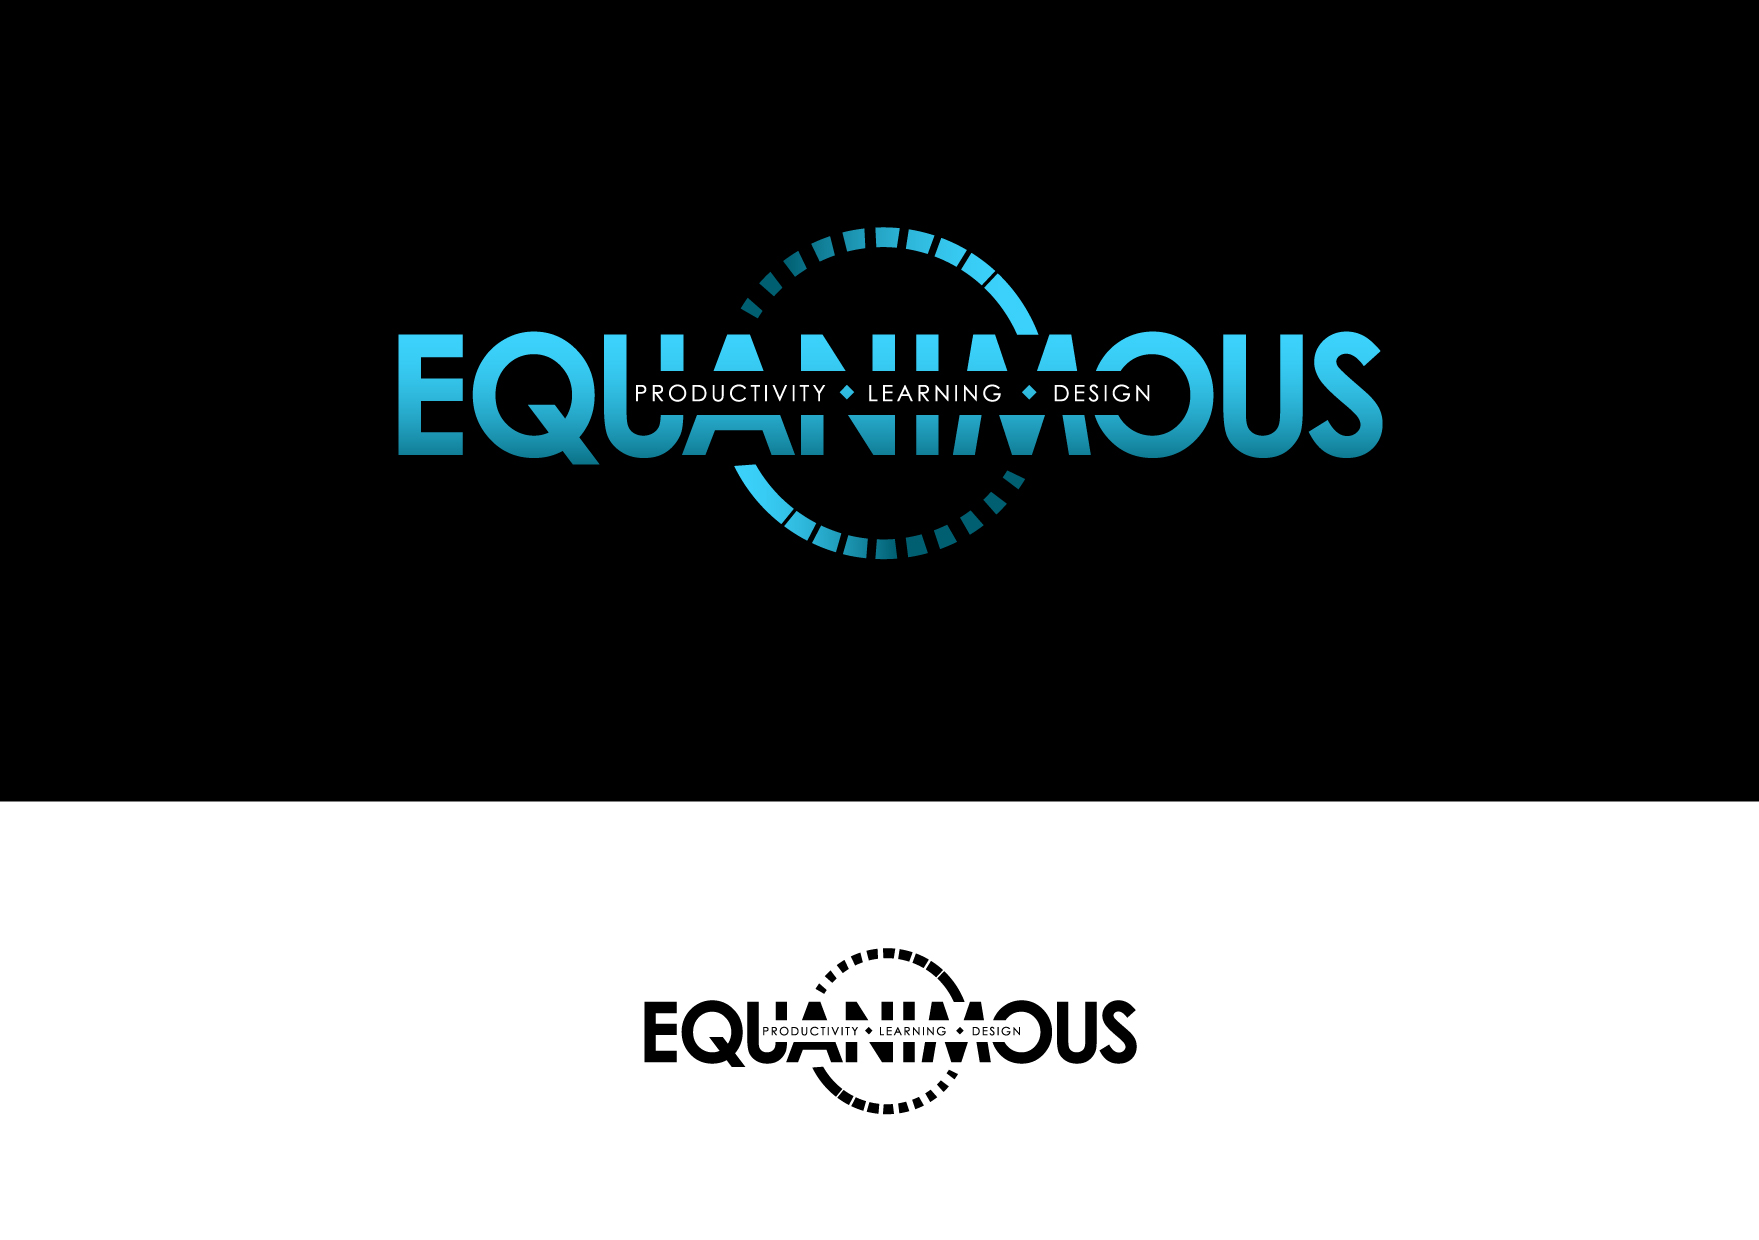 Logo Design by Wilfredo Mendoza - Entry No. 543 in the Logo Design Contest Logo Design : EQUANIMOUS : Productivity | Learning | Design.